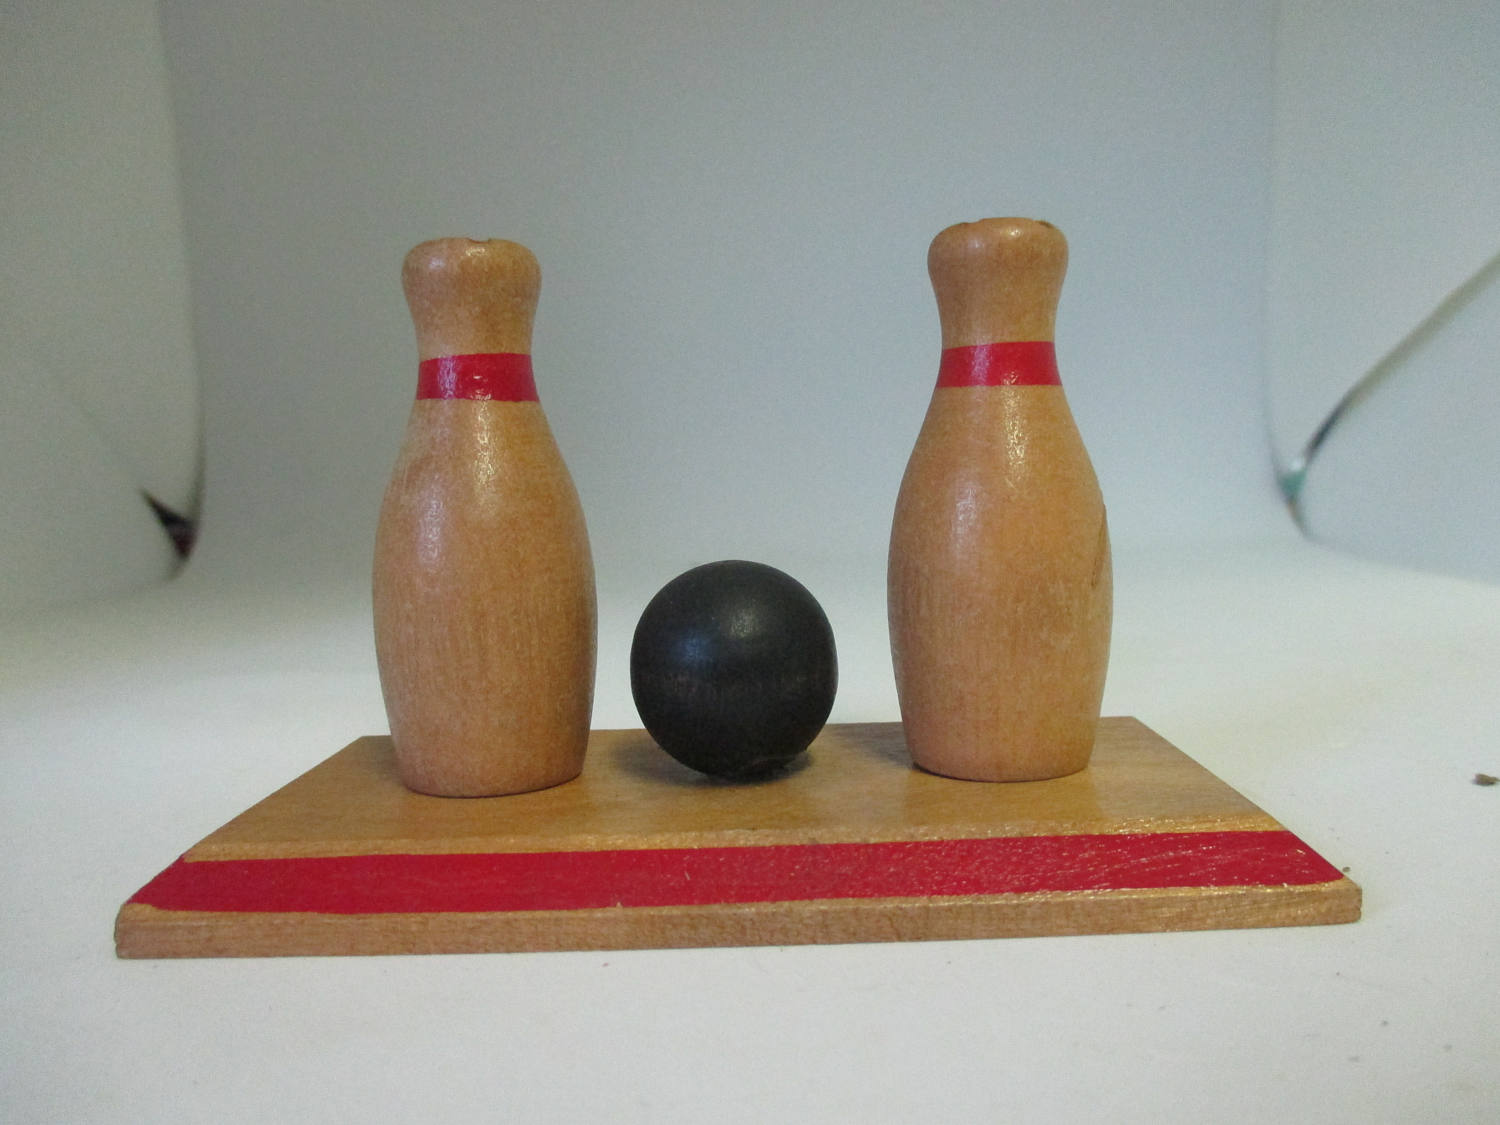 Mid Century Wooden Bowling Pins & Ball Salt and Pepper shakers cottage collectible display farmhouse country Kitchen dining